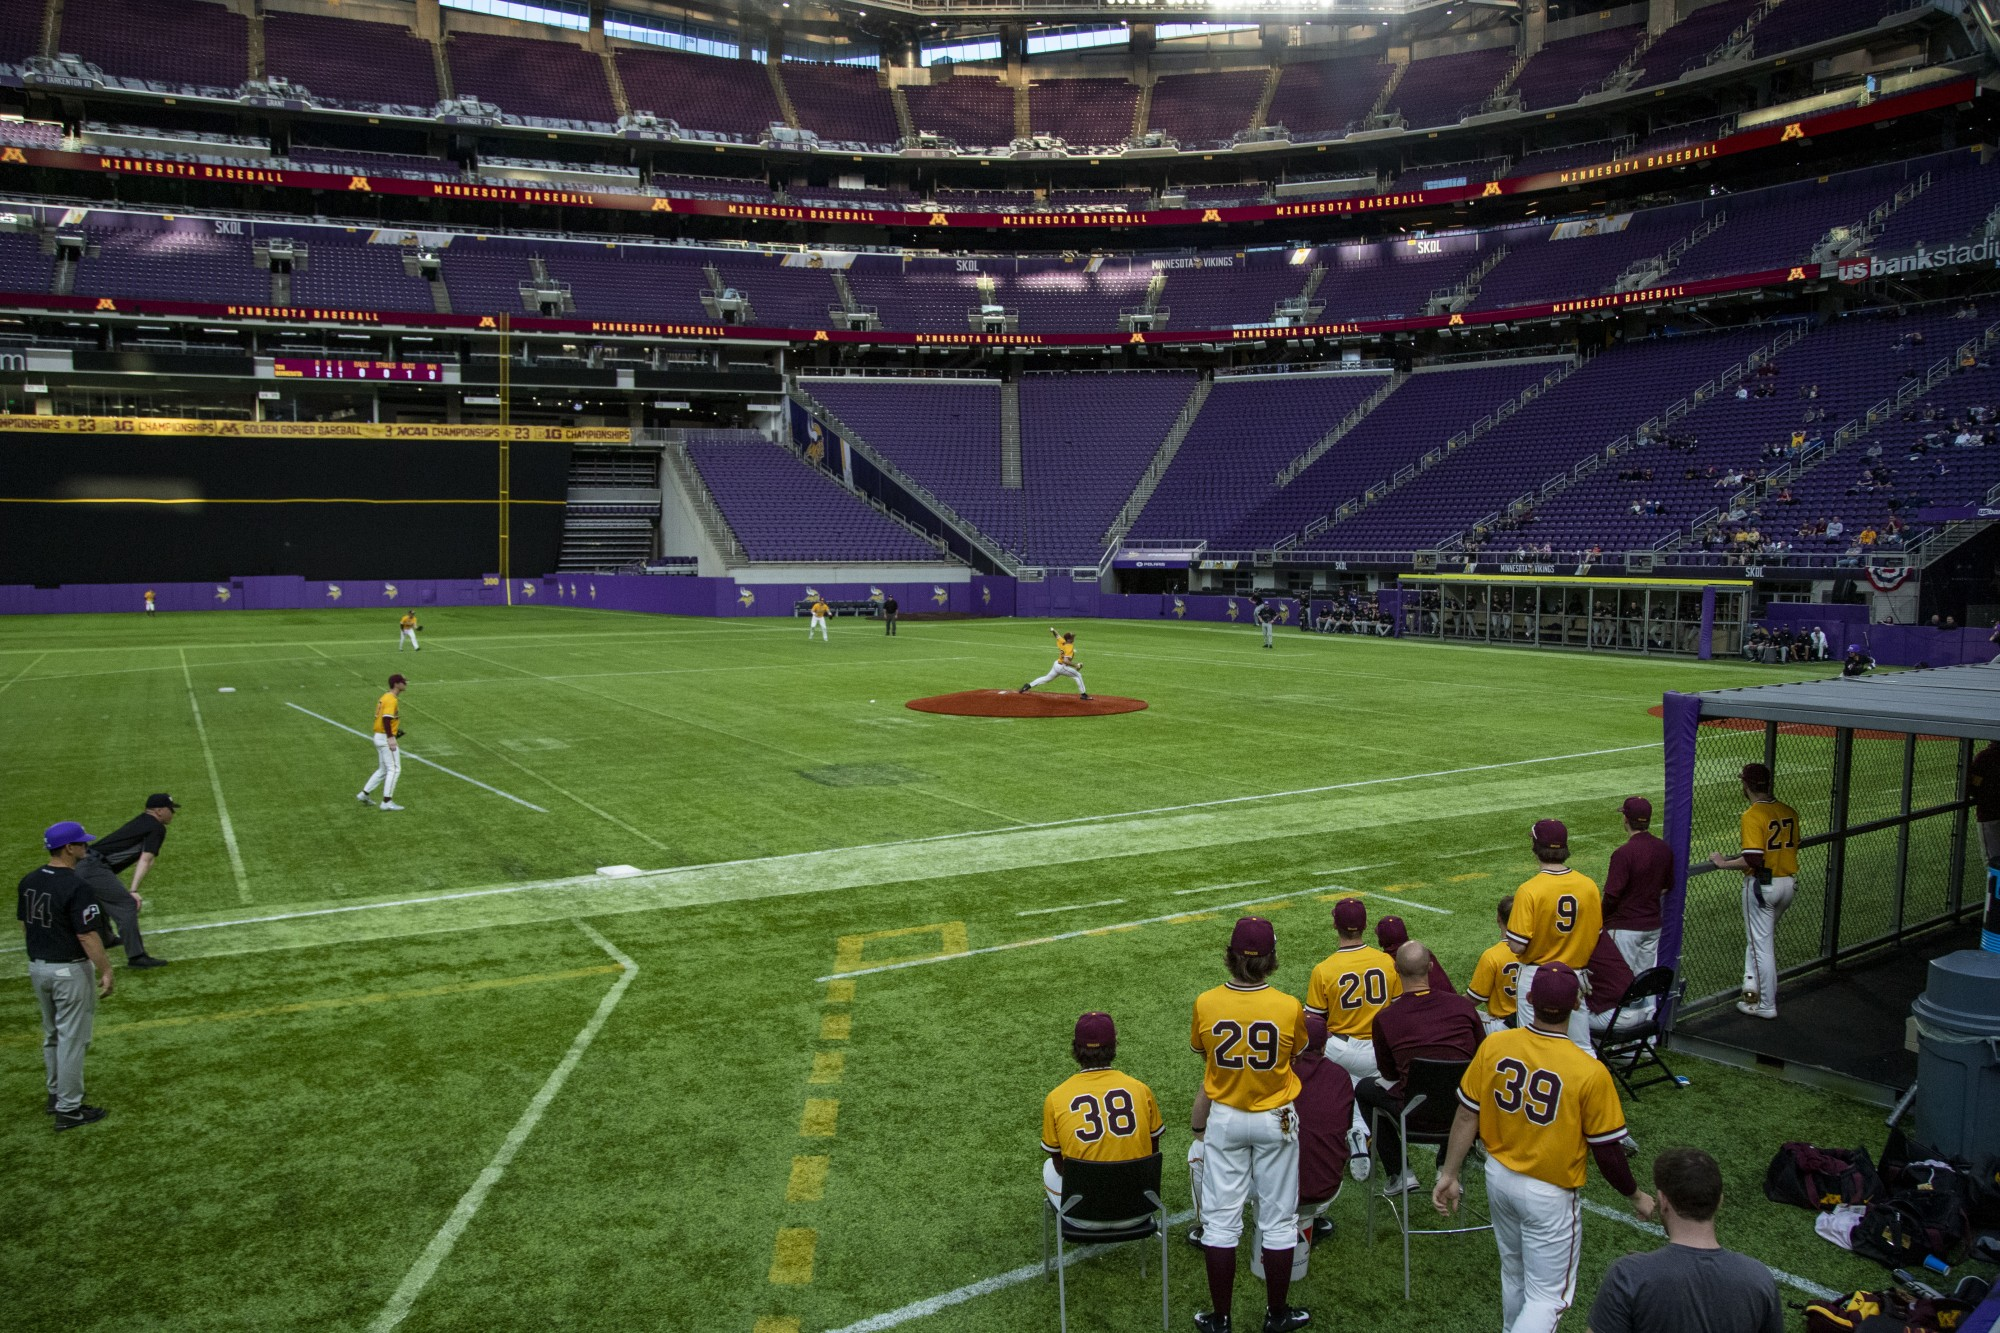 The Gophers watch from the sidelines during their 7-6 win against Texas Christian University at U.S. Bank Stadium on Saturday, Feb. 23.